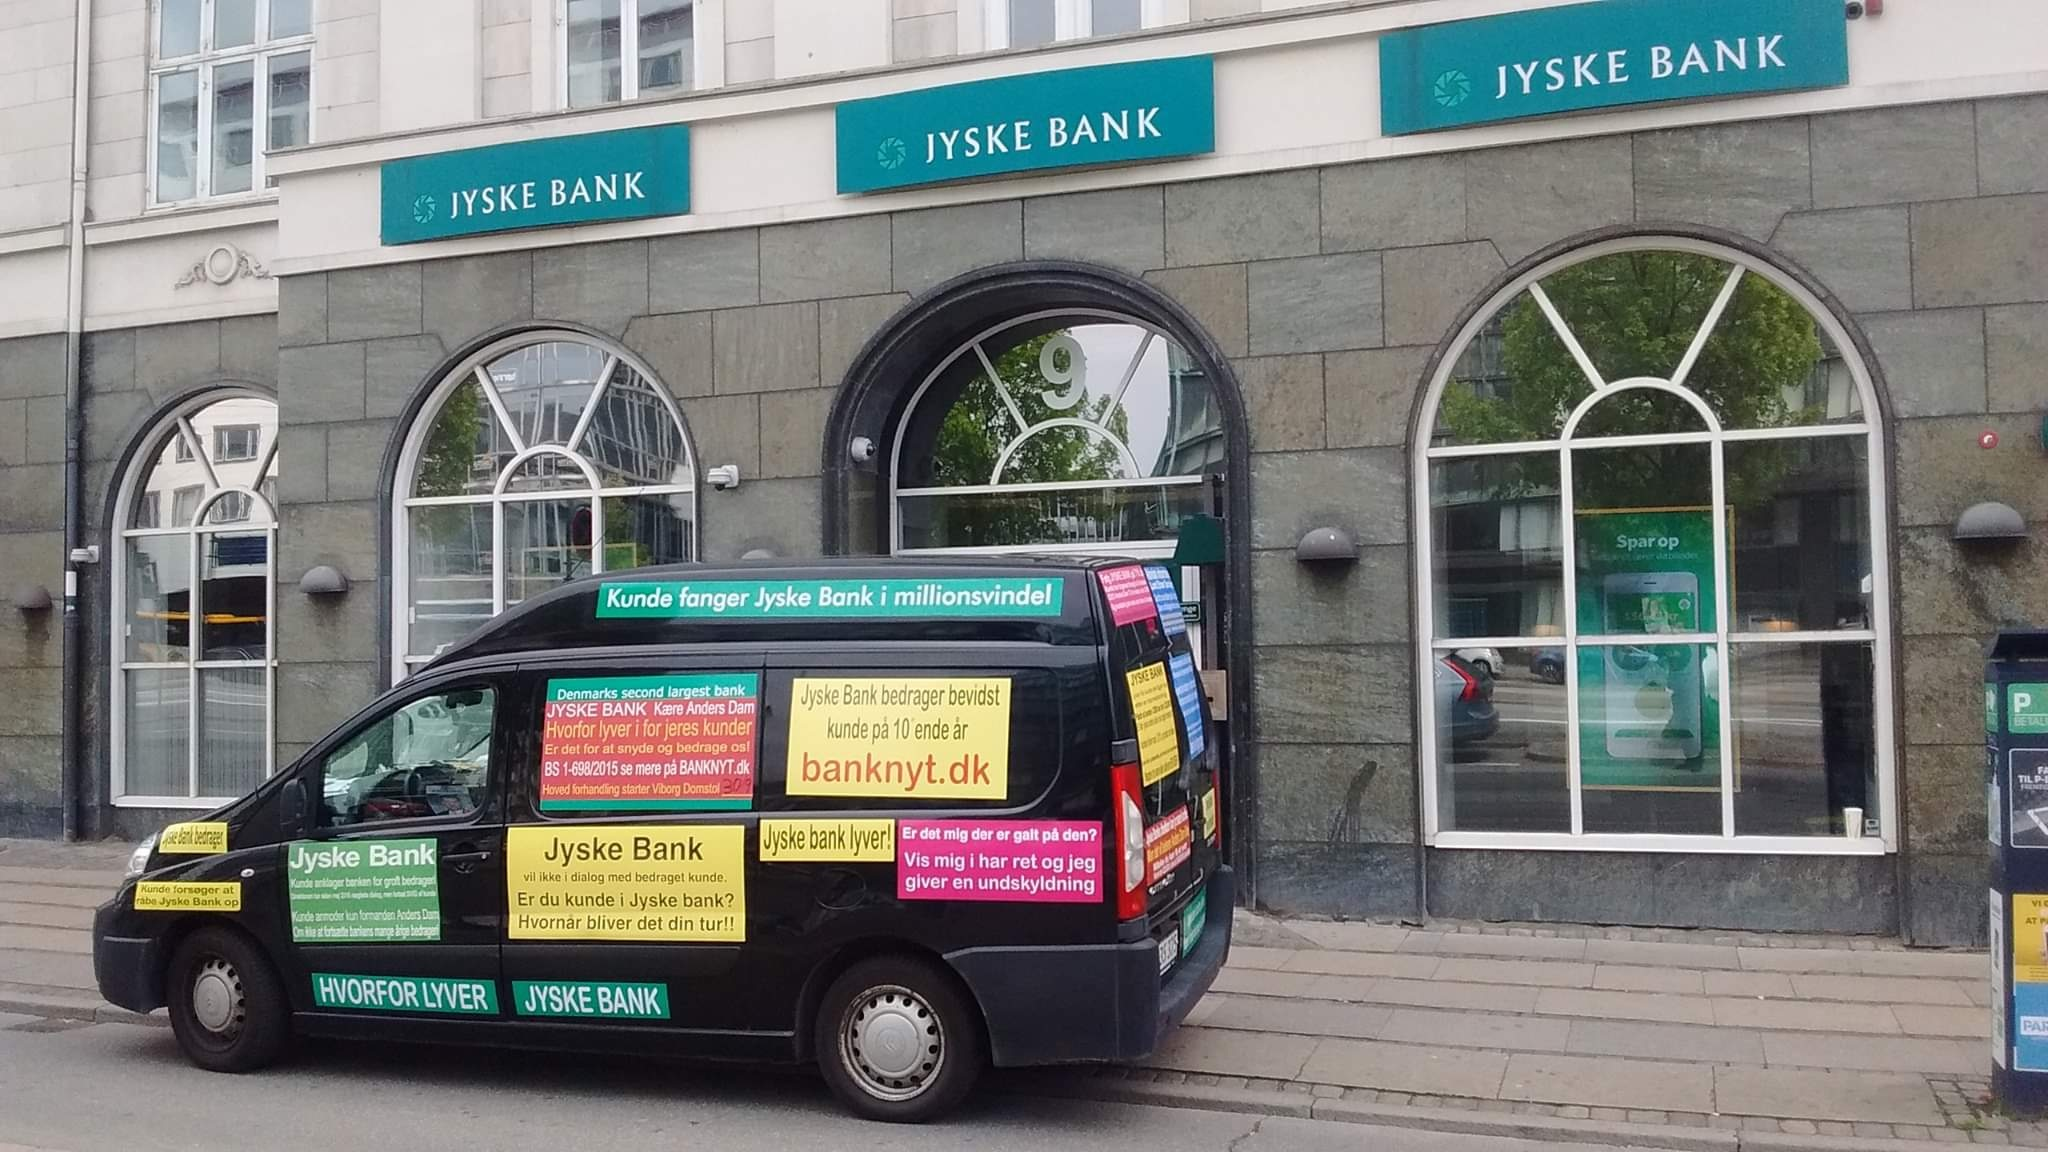 """A case as this, where a regular customer has been fighting against, the Danish bank Jyskebank, through many years, just to avoid the bank's constant fraud. After 10 years of fraud, and a fight since 2013, still unsuccessful. / However, the customer first discovered, that it was gross fraud in 2016, and after which the bank's lawyers In Lund Elmer Sandager, and the executive management CEO Anders Christian Dam was informed about the fraud. Expects the customer that the bank """"Jyske bank"""" itself, immediately stops the bank fraud against the customer. / But after 3 years, is the customer become more wise, and must be aware, that the Danish bank will not voluntarily, stop the scam. At least not voluntarily. :-) :-) Here is the fight, with a one single man against a whole army. :-) :-) Remember we have to do, with one of Denmark's most powerful financial companies."""